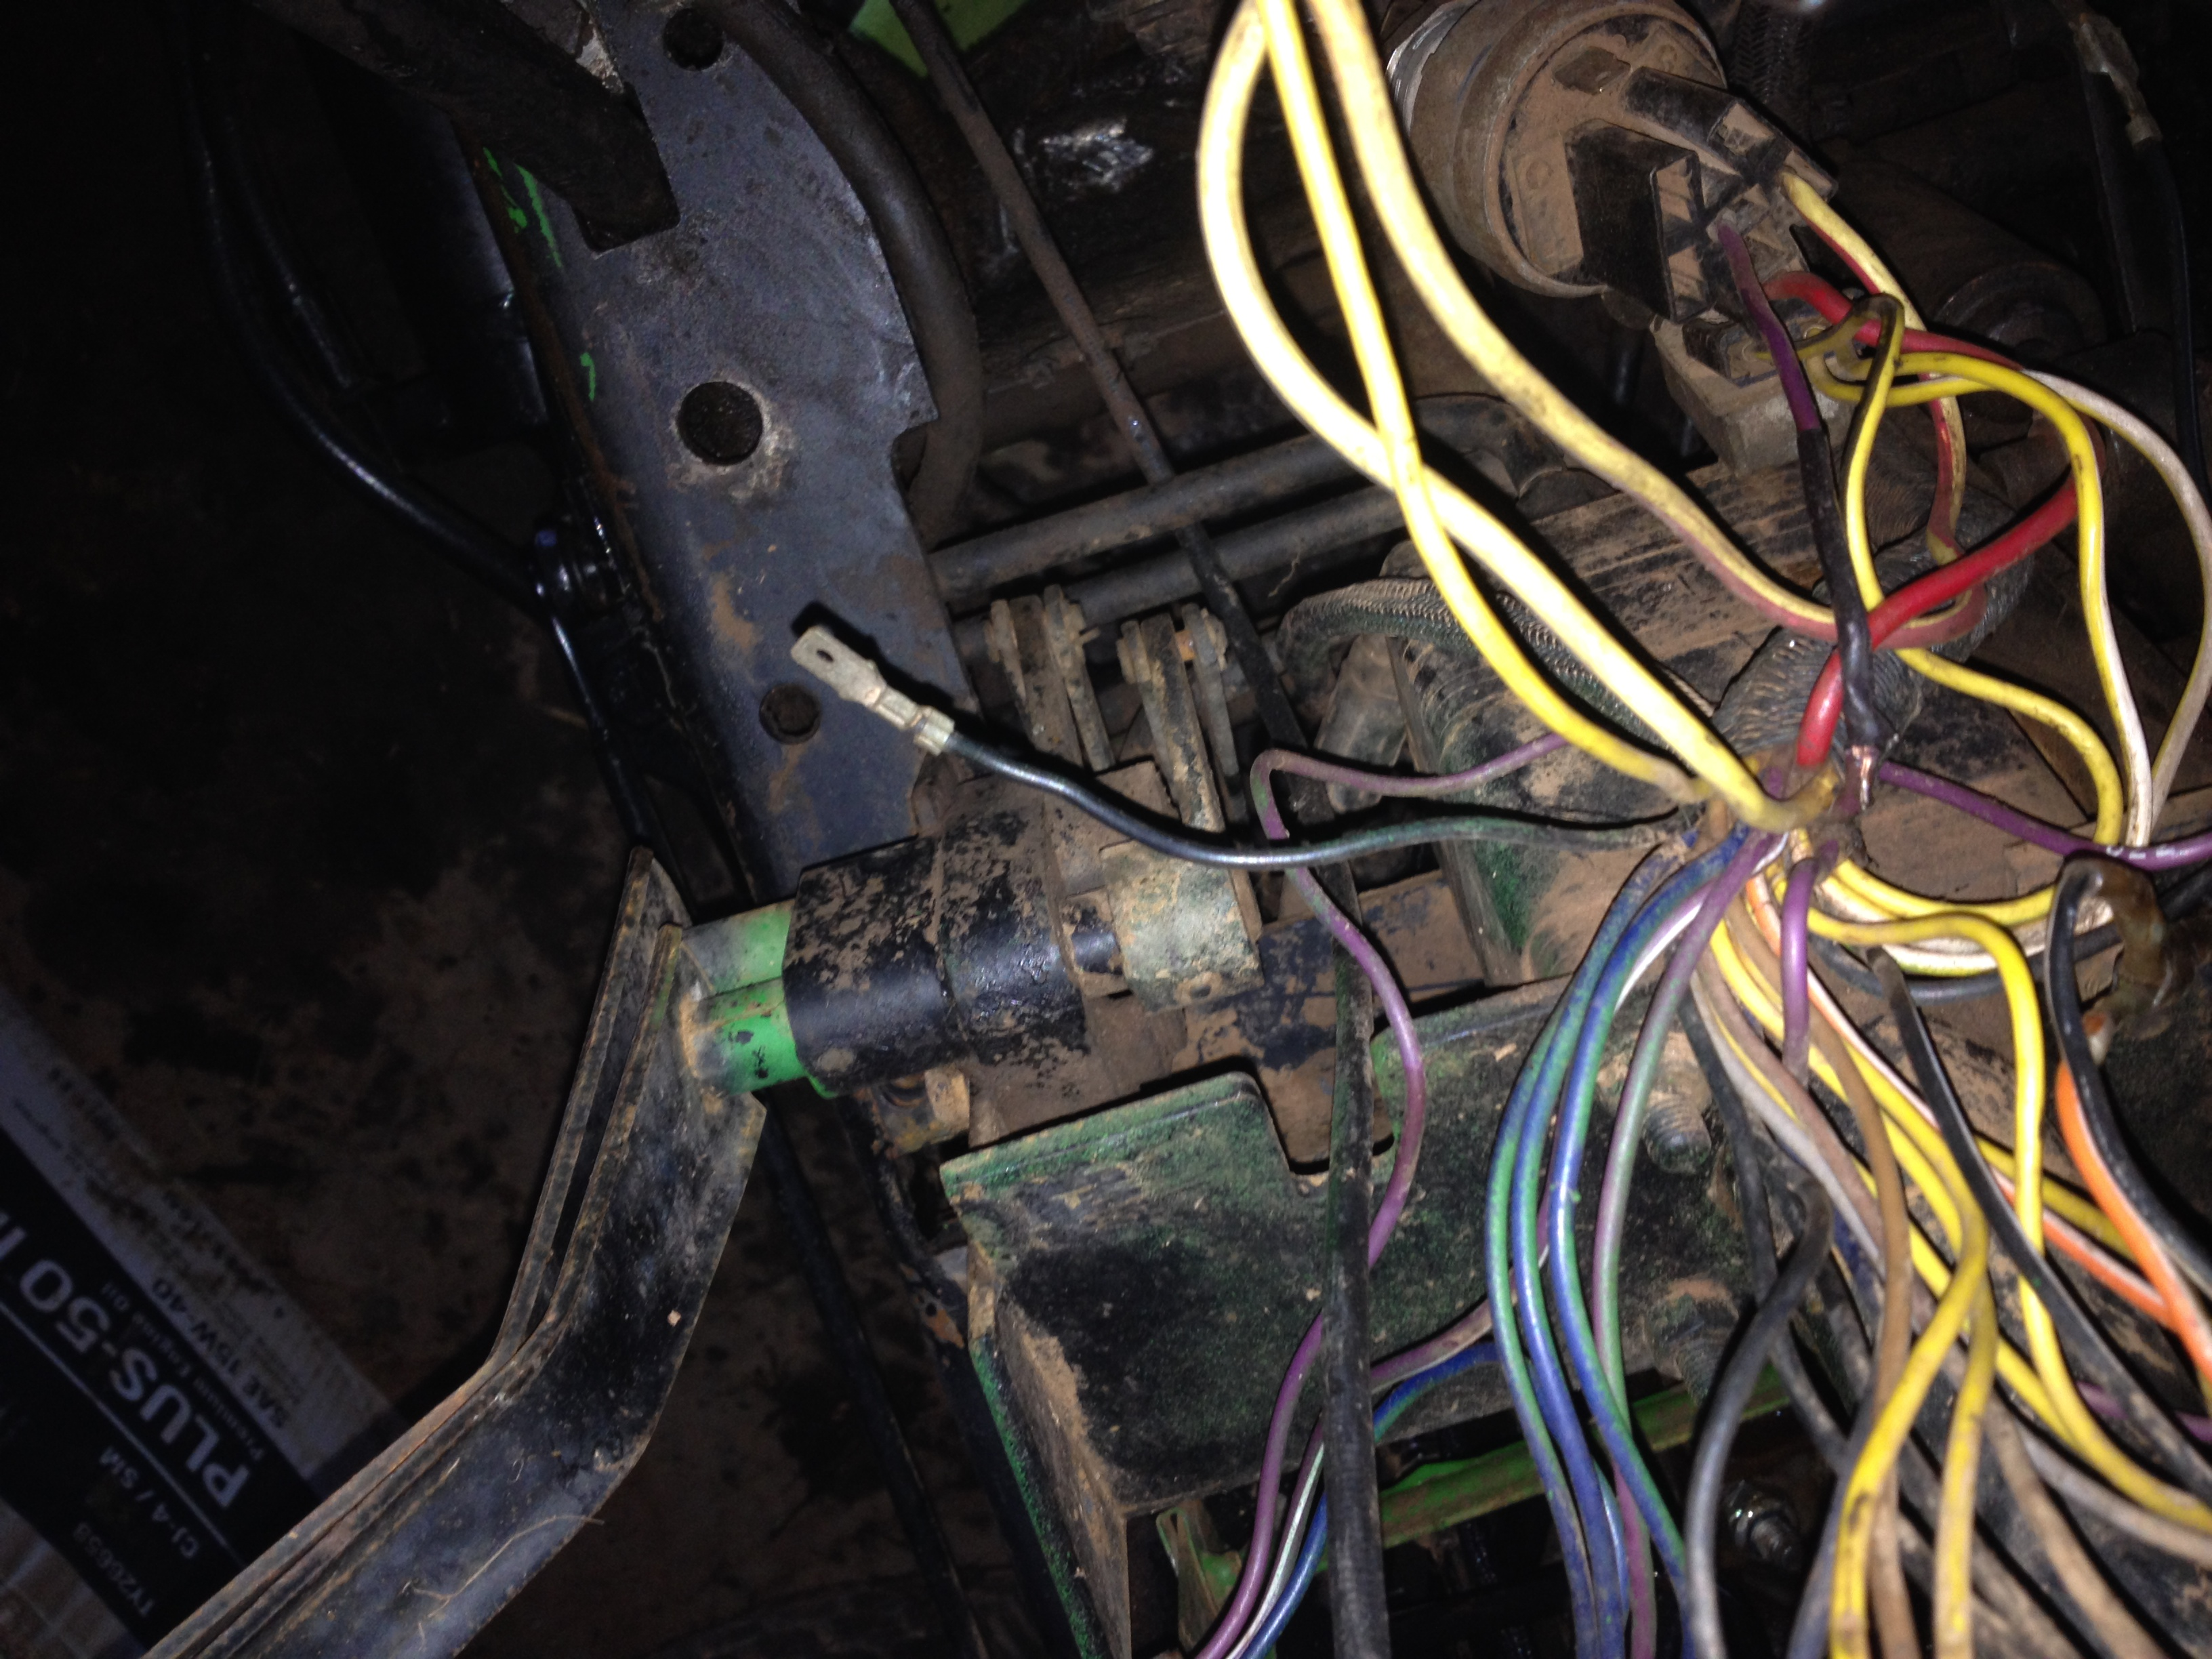 john deere 108 wiring diagram wiring diagram and schematic john deere mt wiring diagram images guru